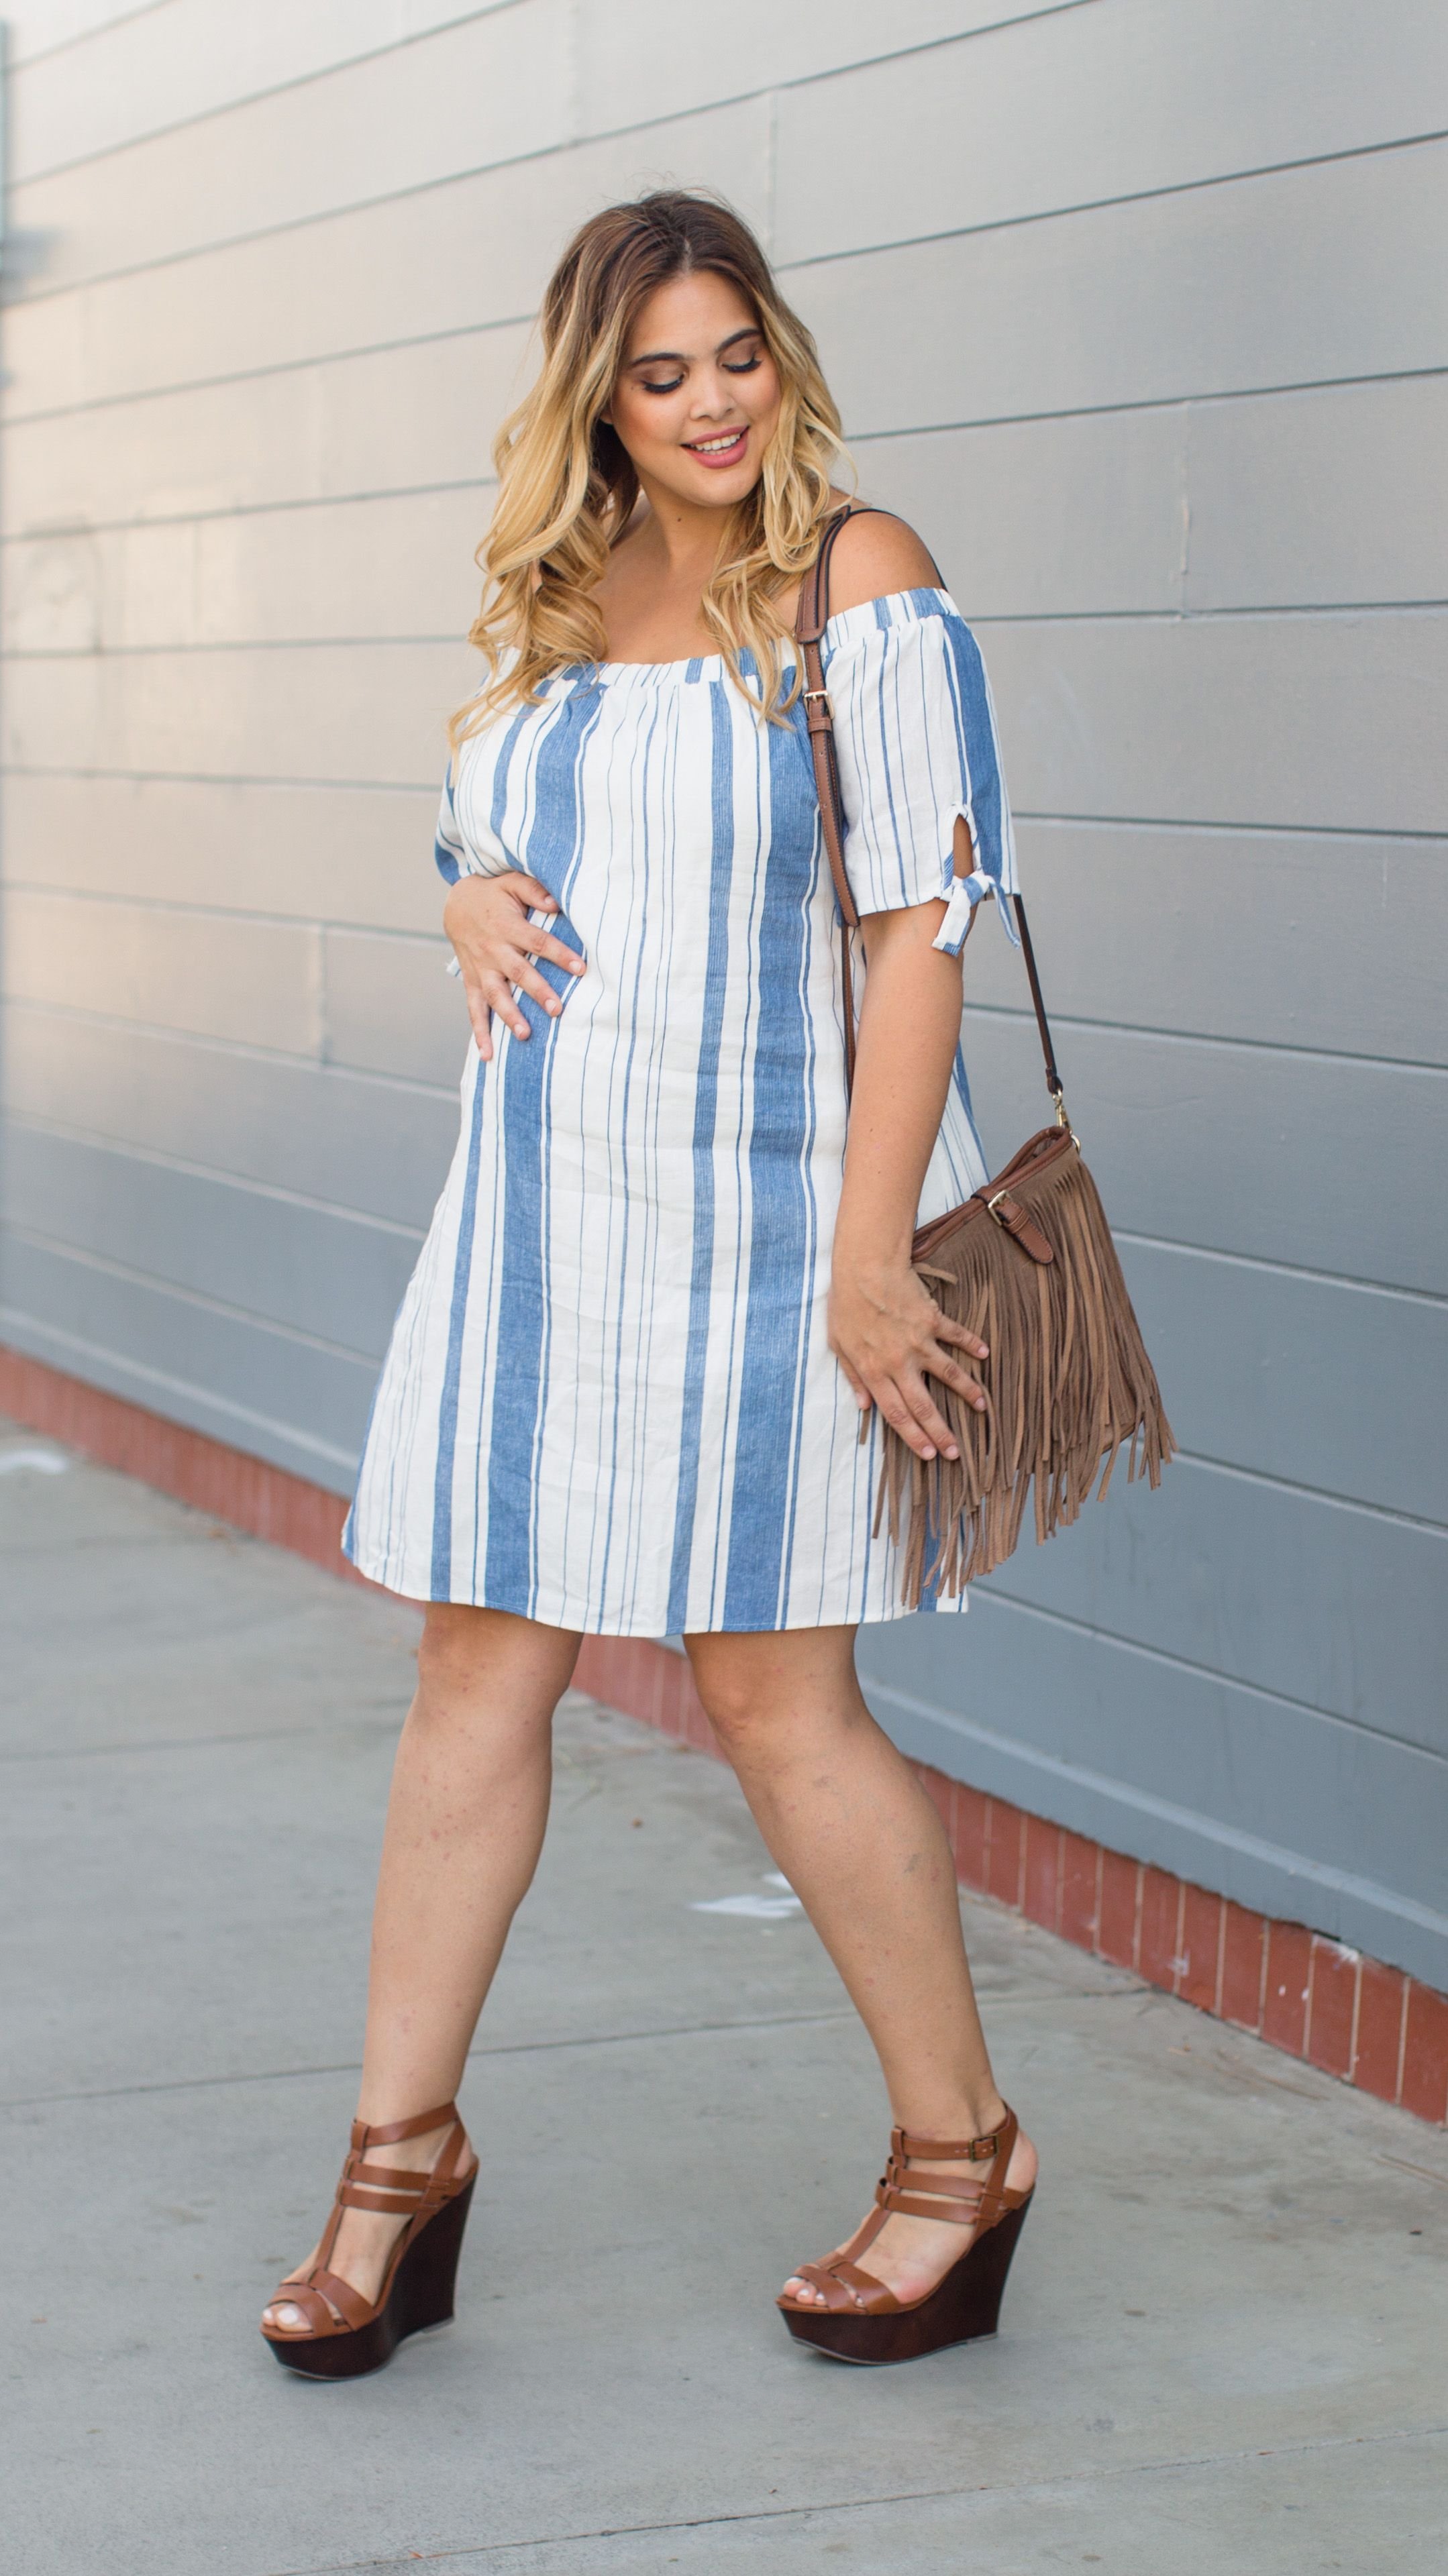 c52e406bf038c We're in love with this off shoulder maternity dress. The striped print and  tie details on the sleeves make this dress your new on trend staple this  season.